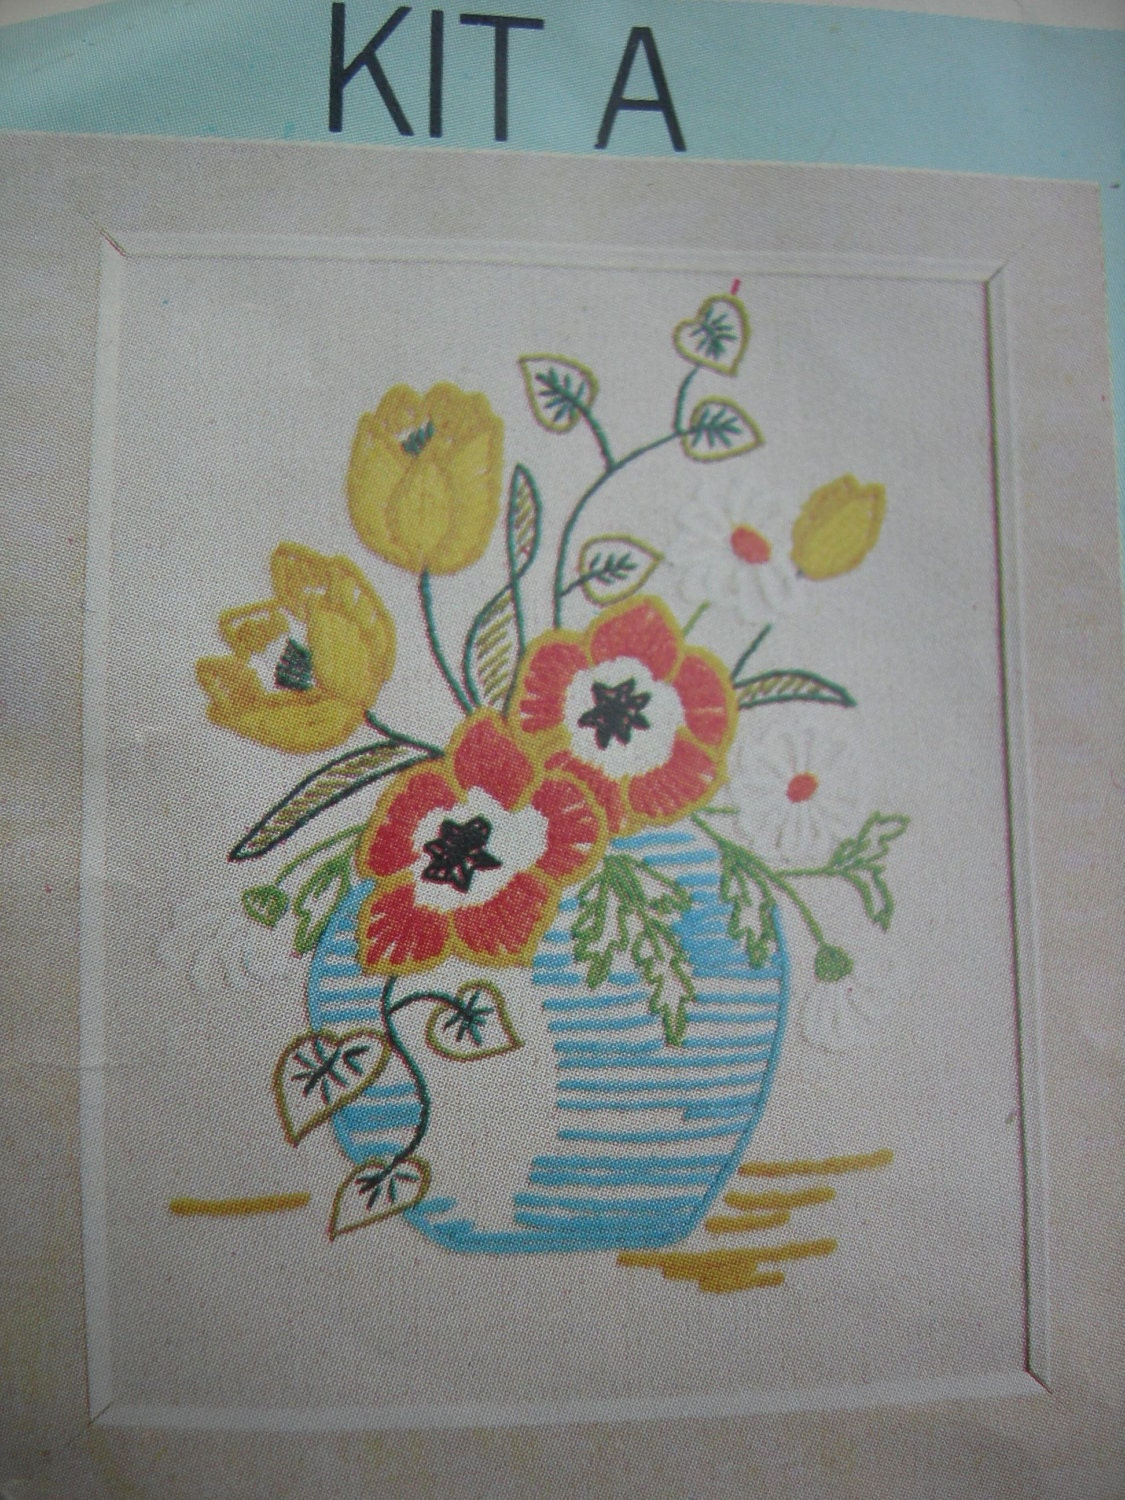 Vintage crewel embroidery patterns by artcapades on etsy